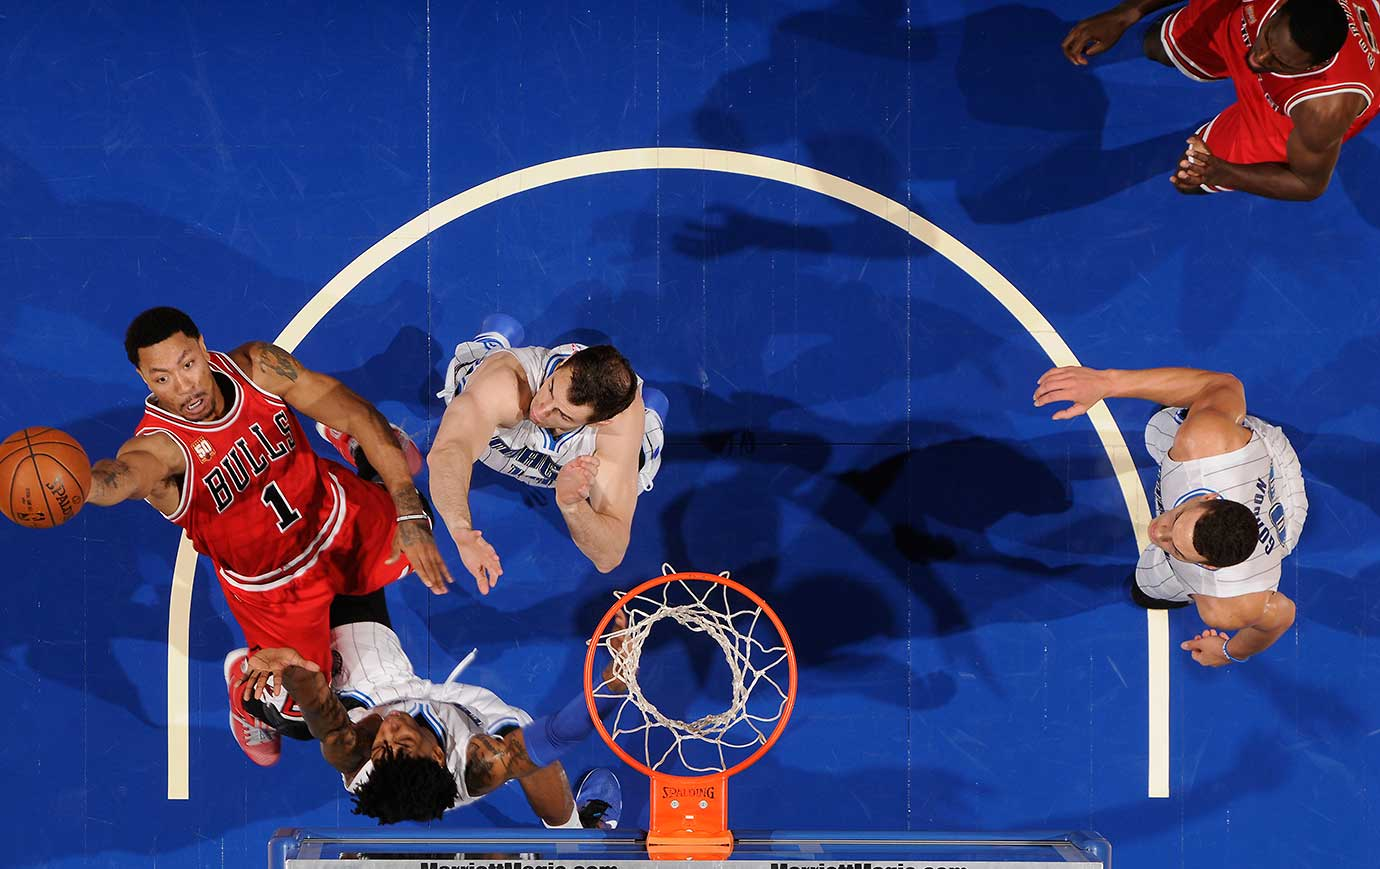 Derrick Rose #1 of the Chicago Bulls goes to the basket against the Orlando Magic.